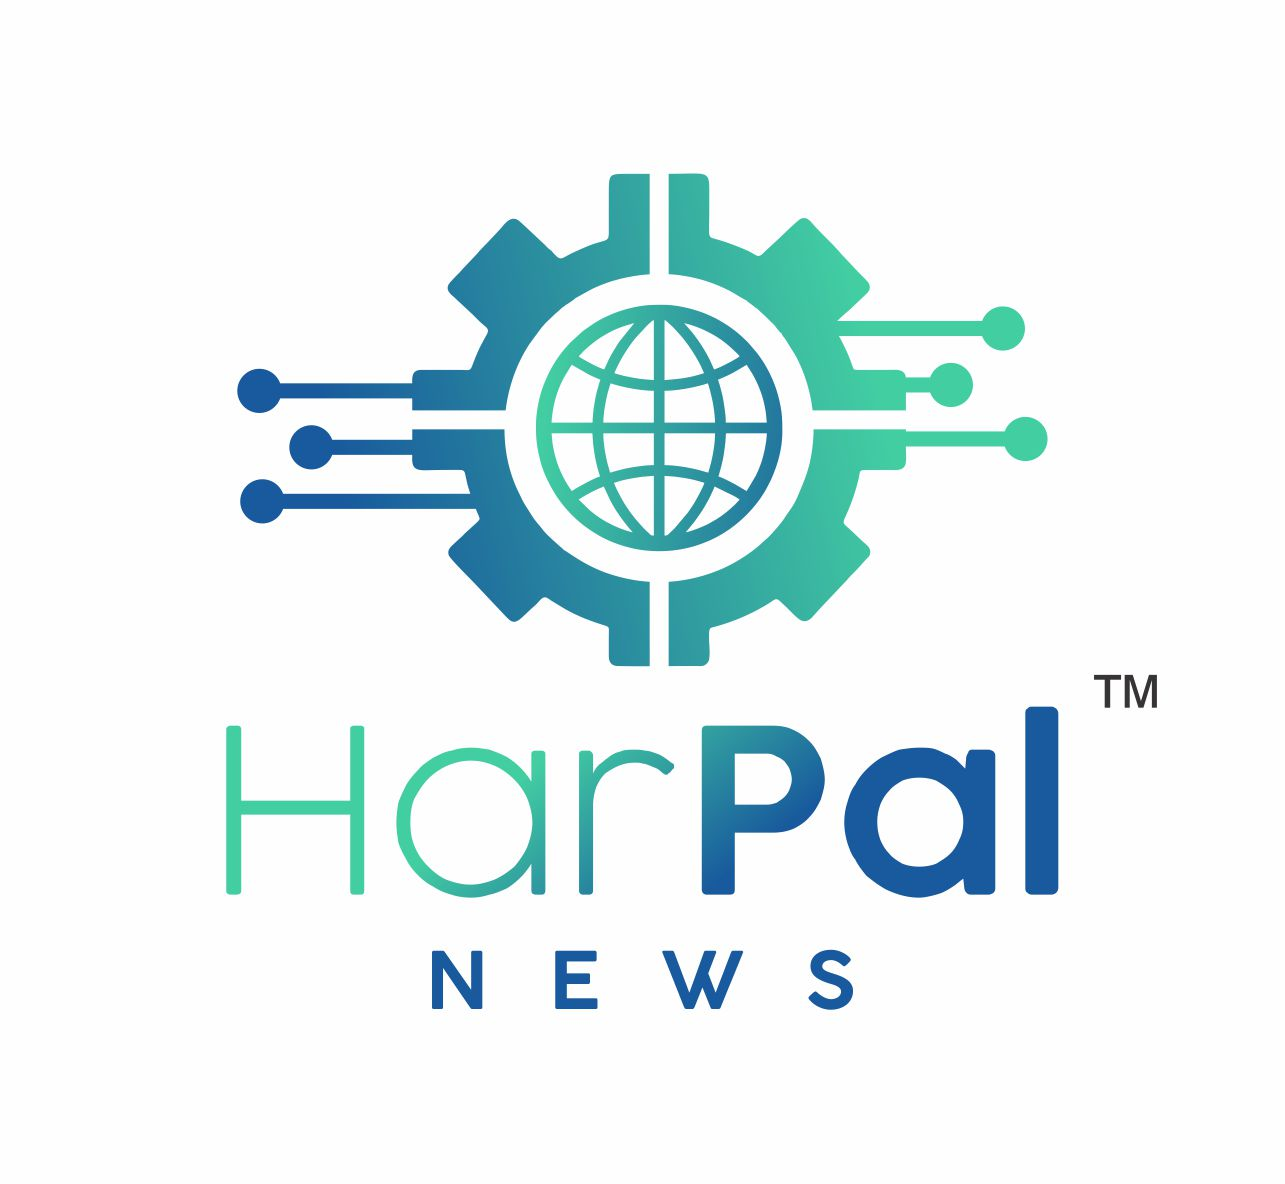 Harpal News